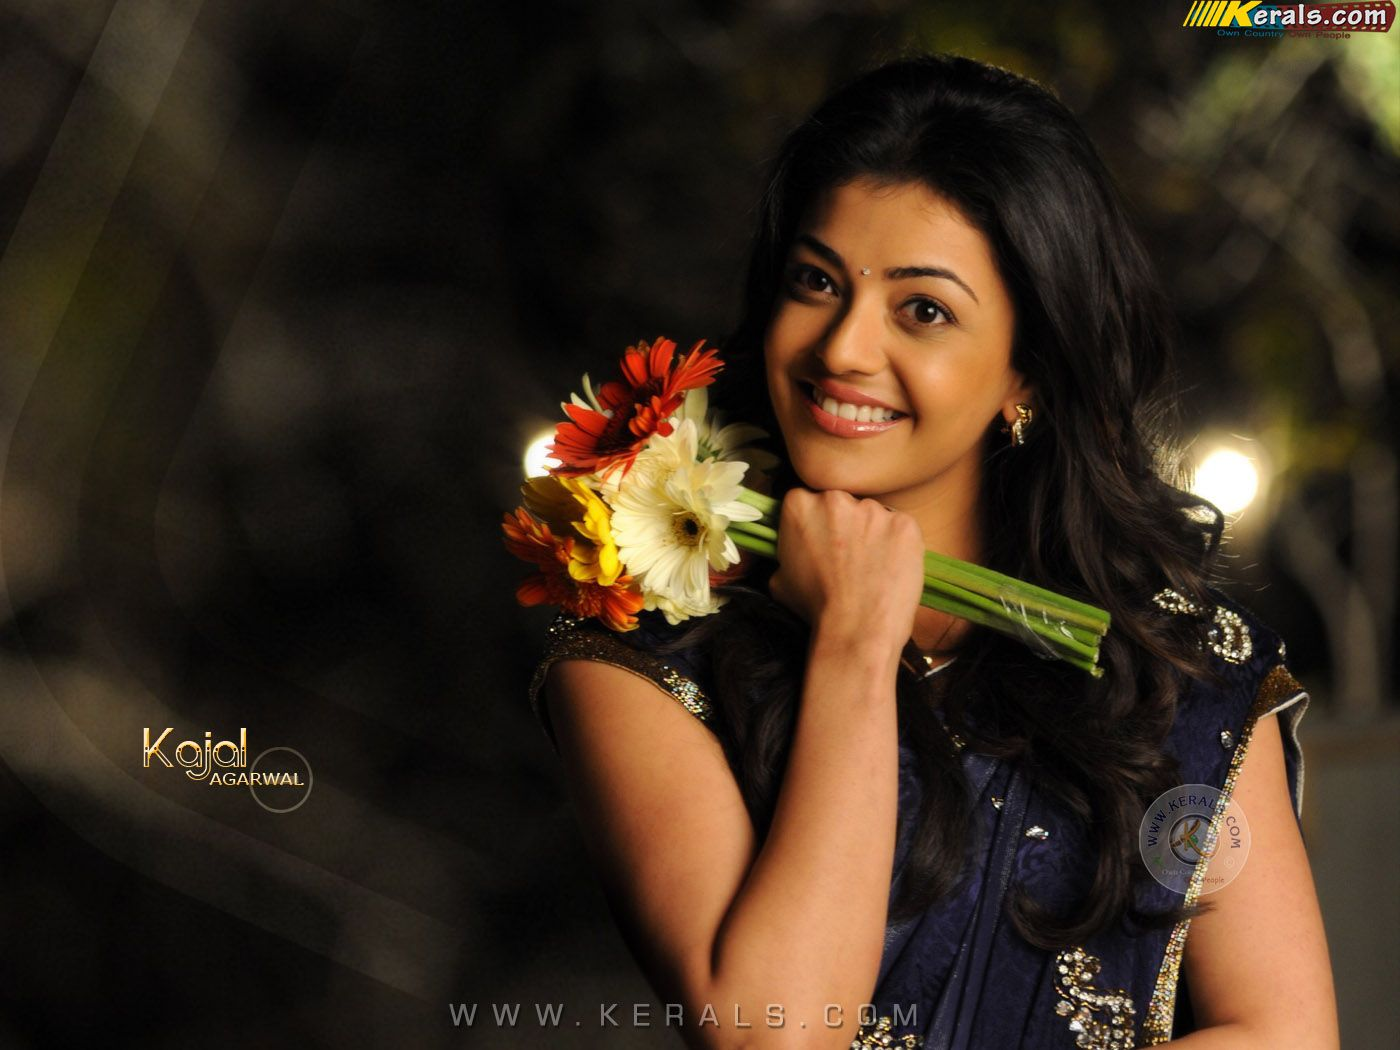 wallpapers tagged with kajal kajal hd wallpapers page | wallpapers